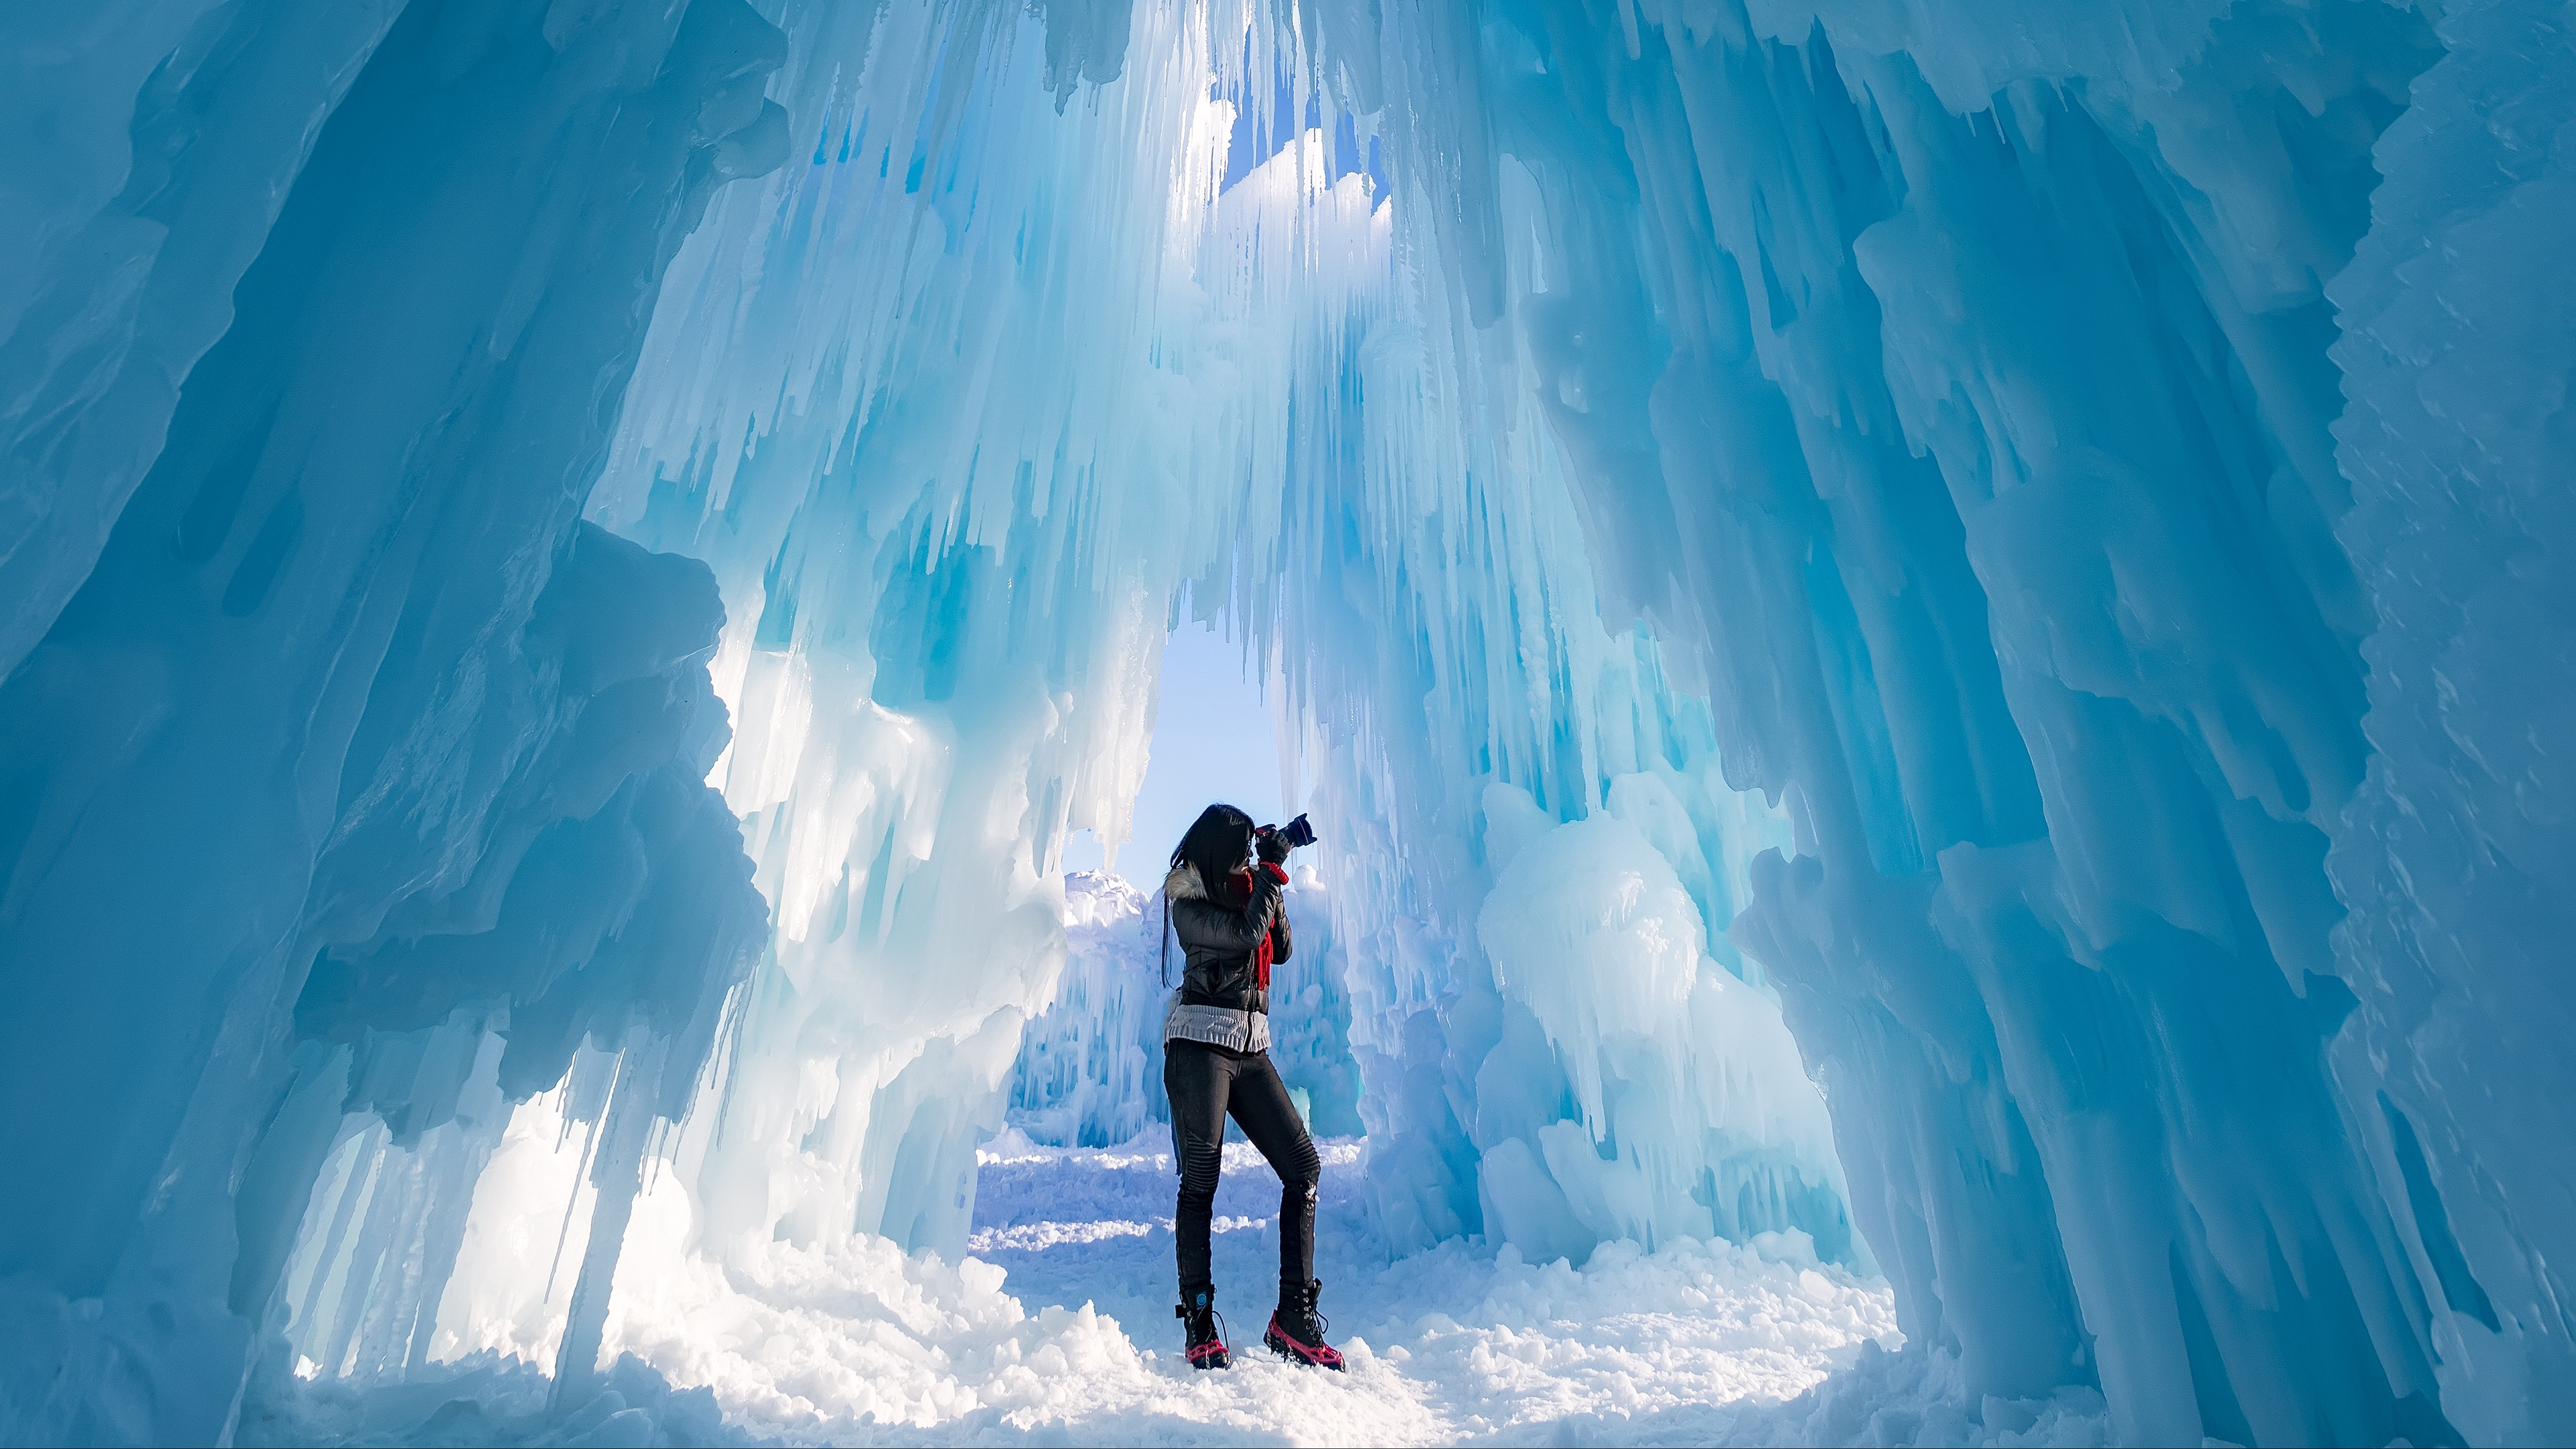 ice castle photographer ice glacier 4k 1541115597 - ice castle, photographer, ice, glacier 4k - photographer, ice castle, Ice